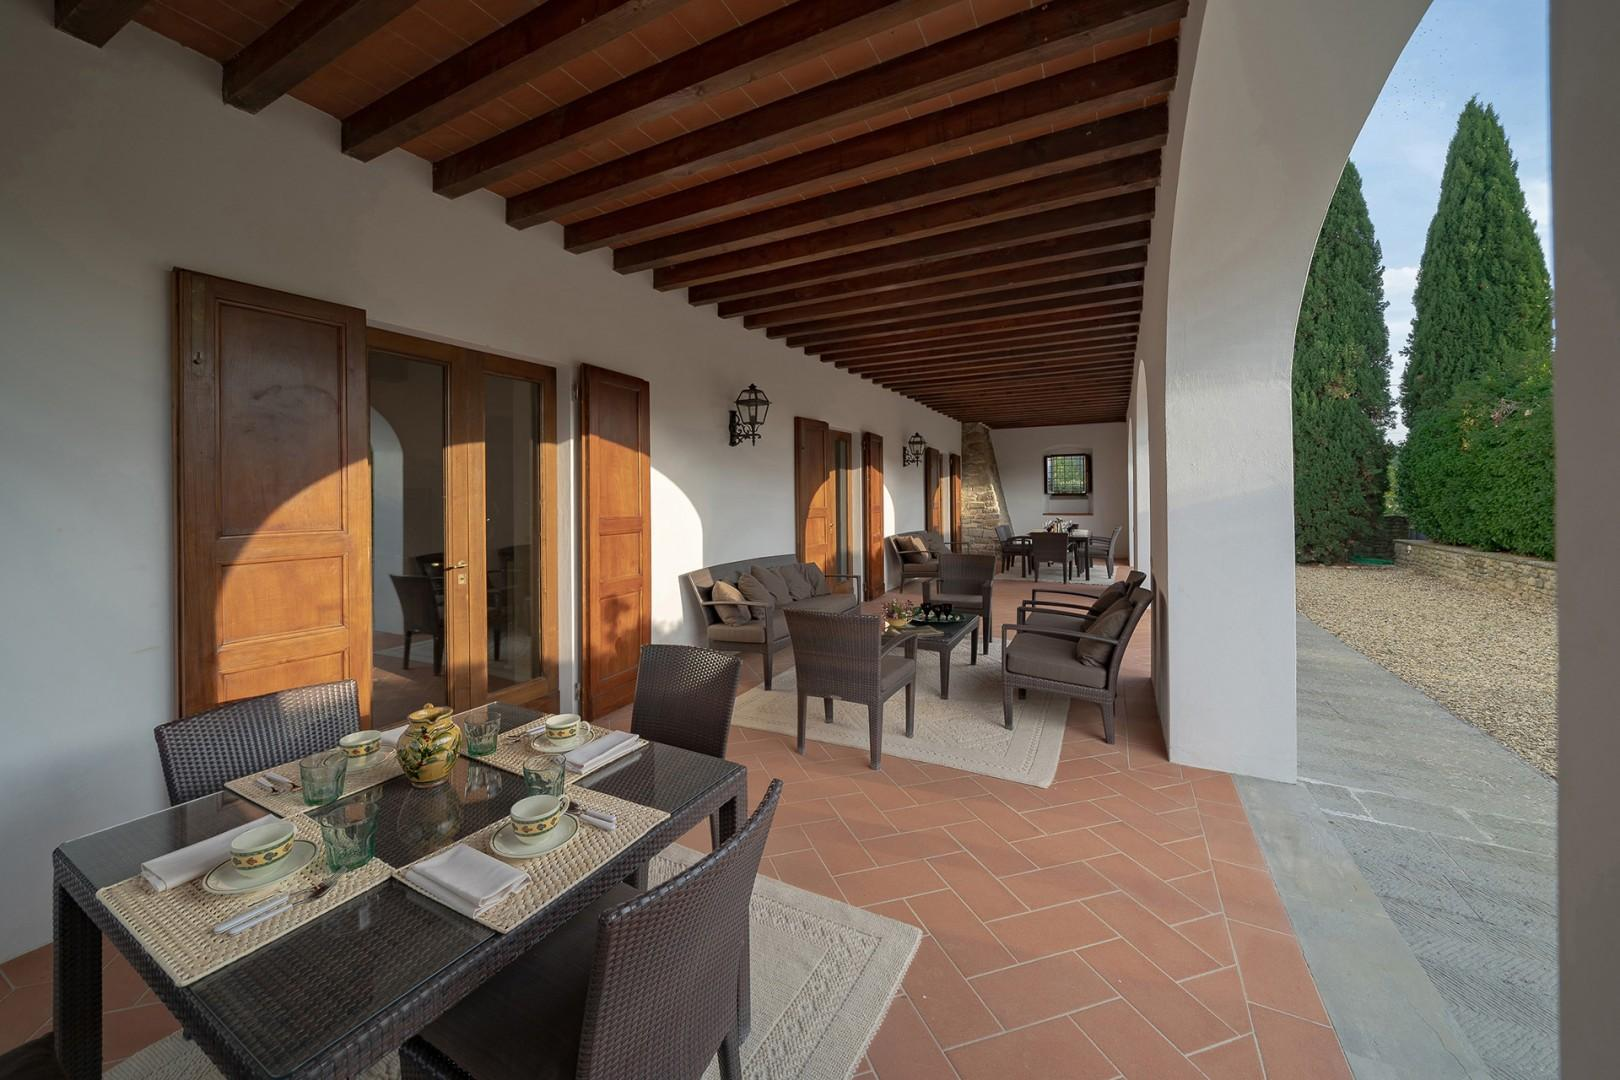 Shaded outdoor loggia with lounge chairs and outdoor dining.